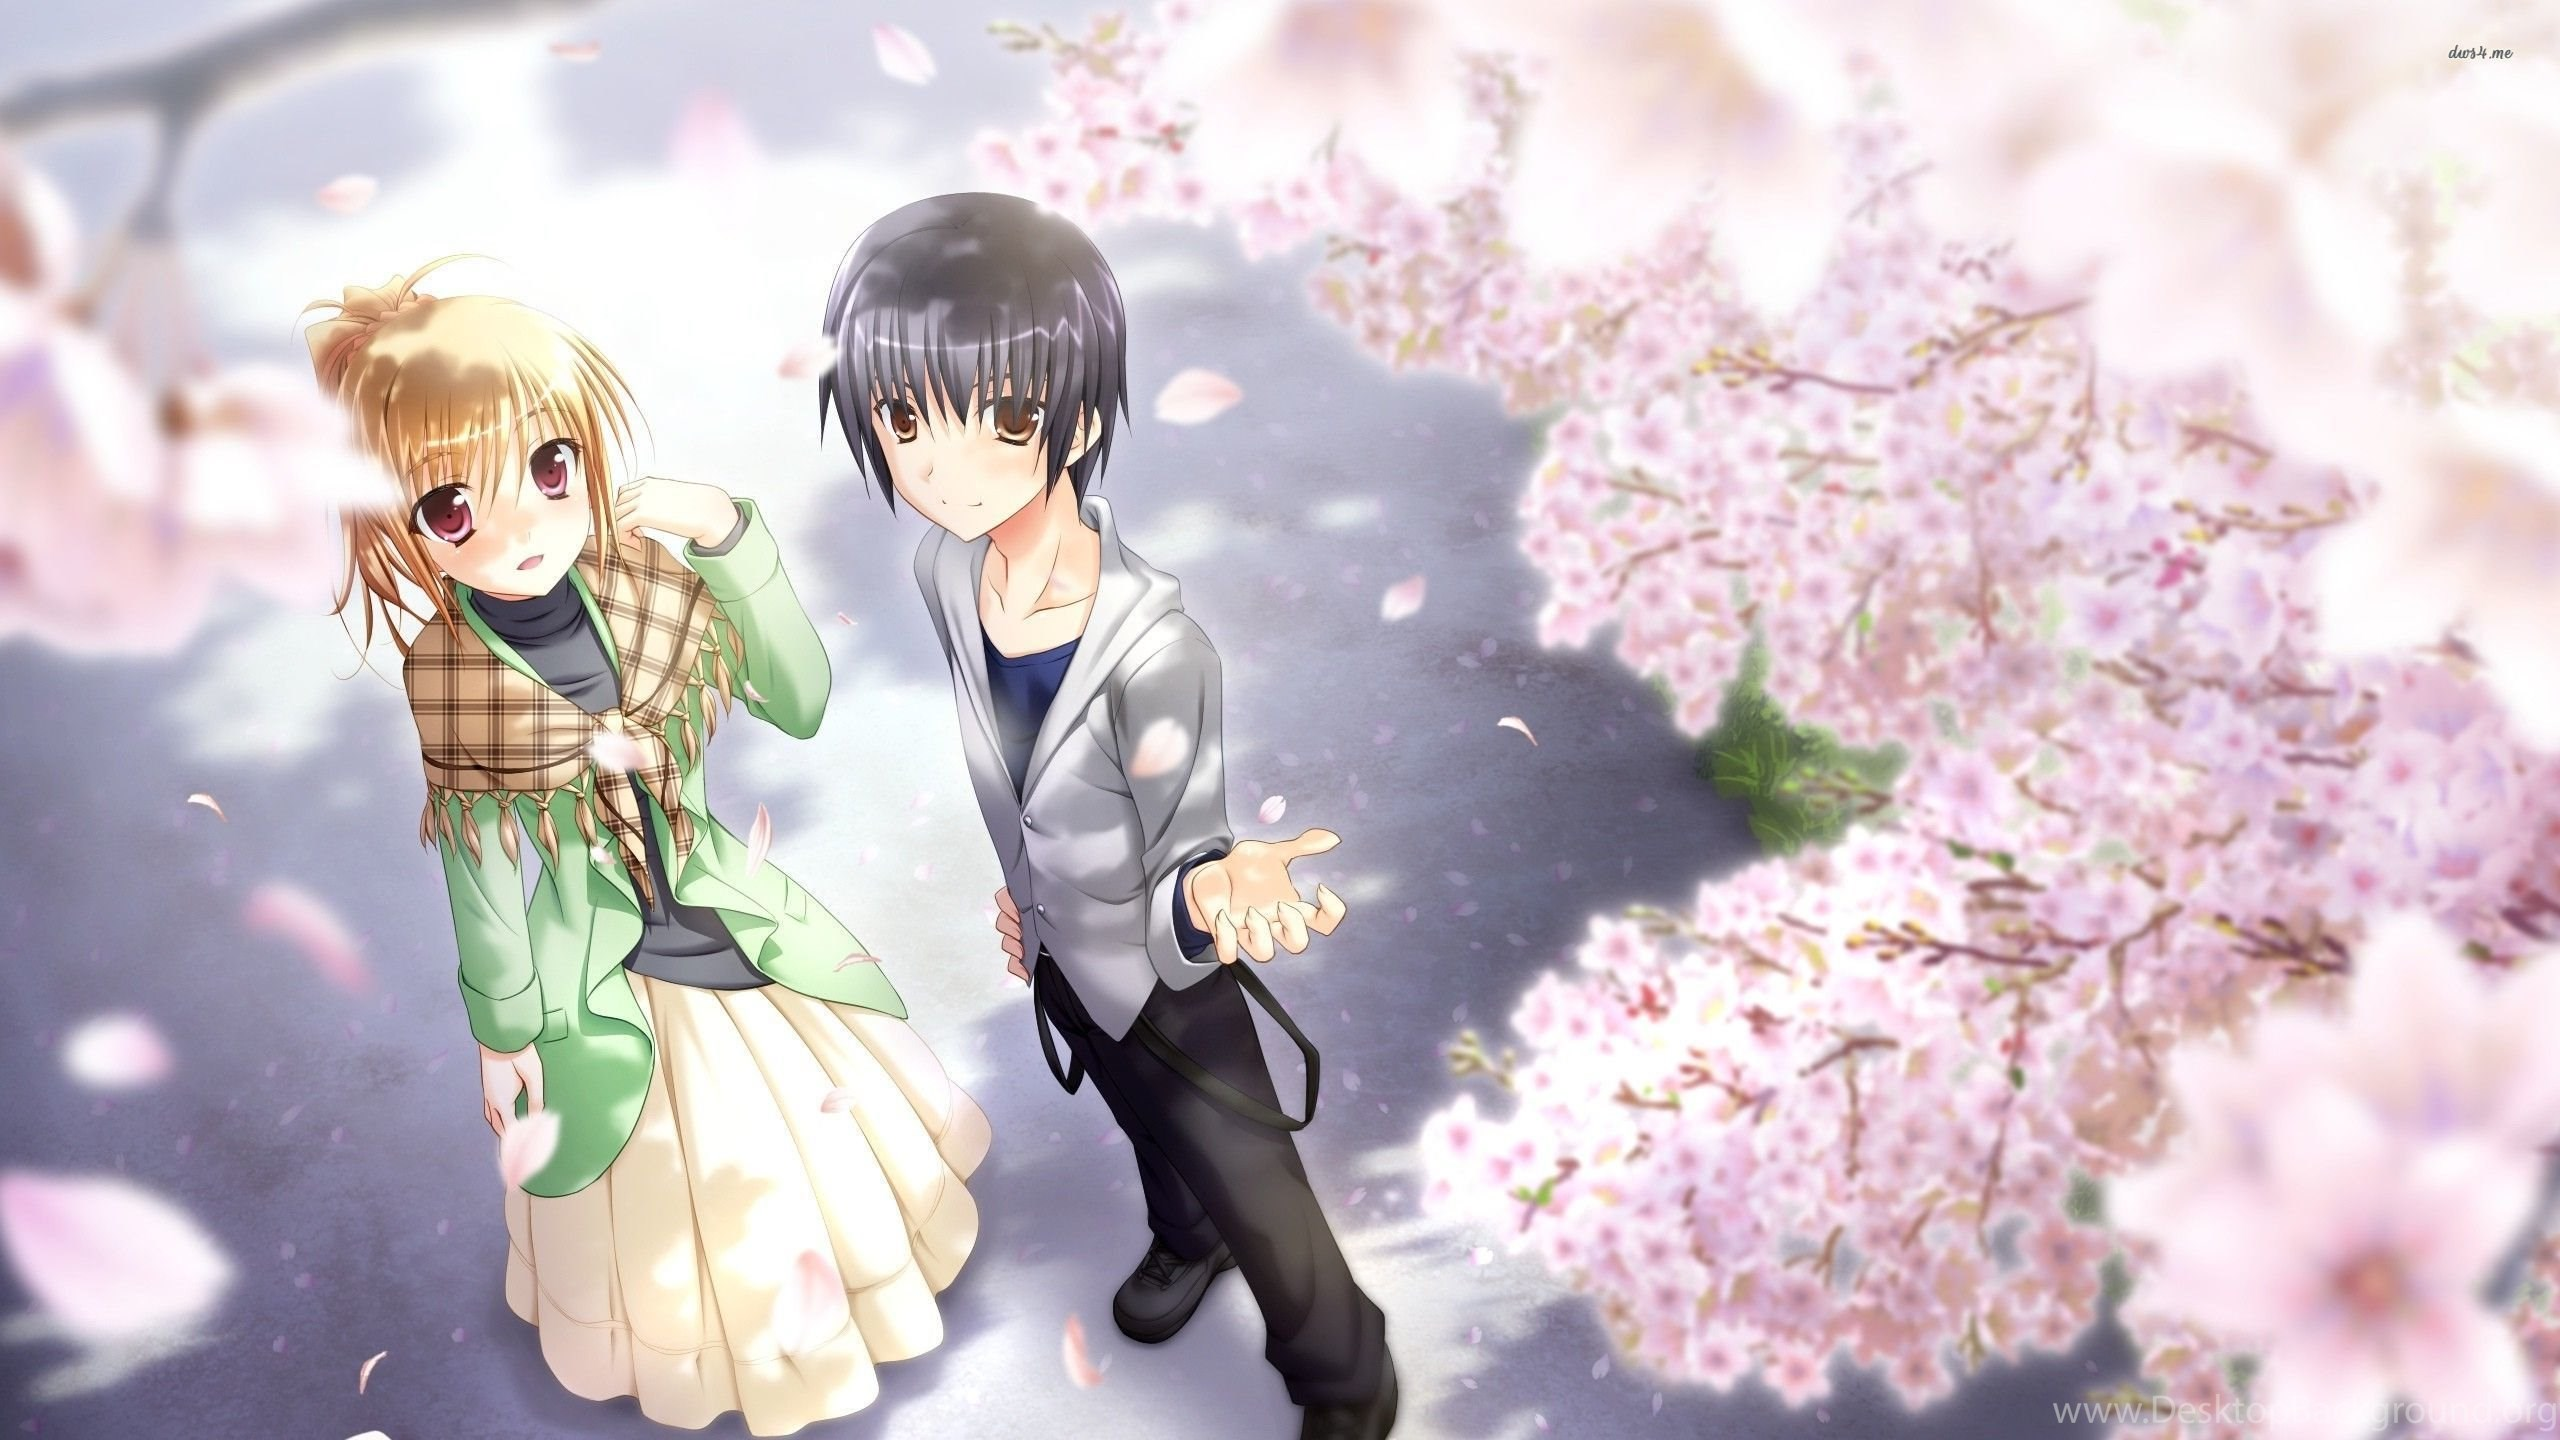 Cute Couple Wallpapers Anime Desktop Background